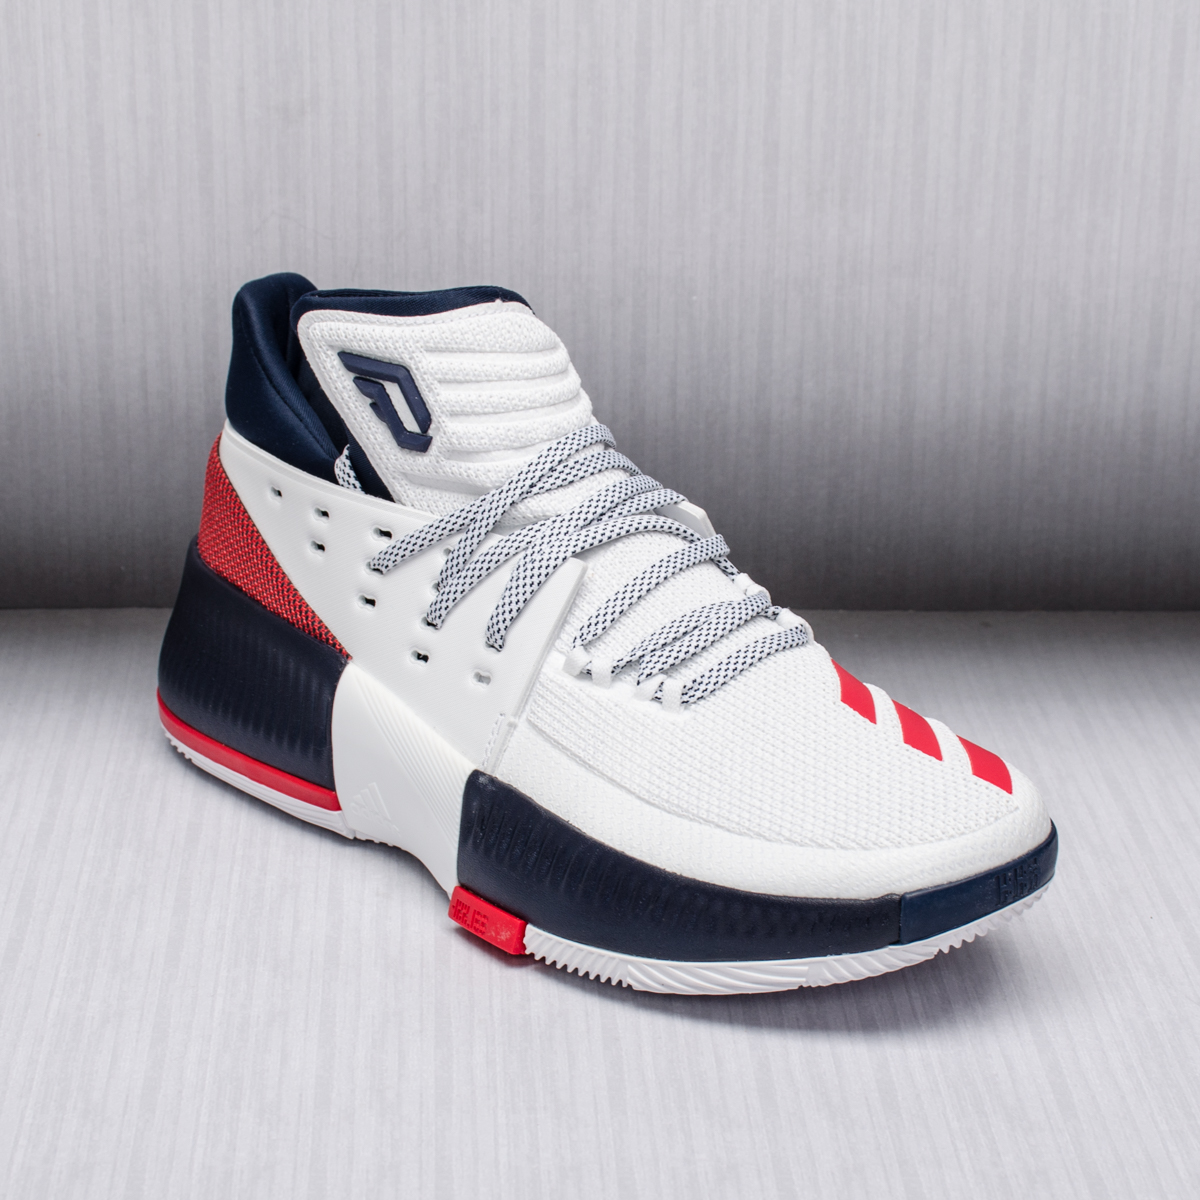 adidas Dame Lillard 3 Basketball Shoes - BASKETBALL SHOES ...